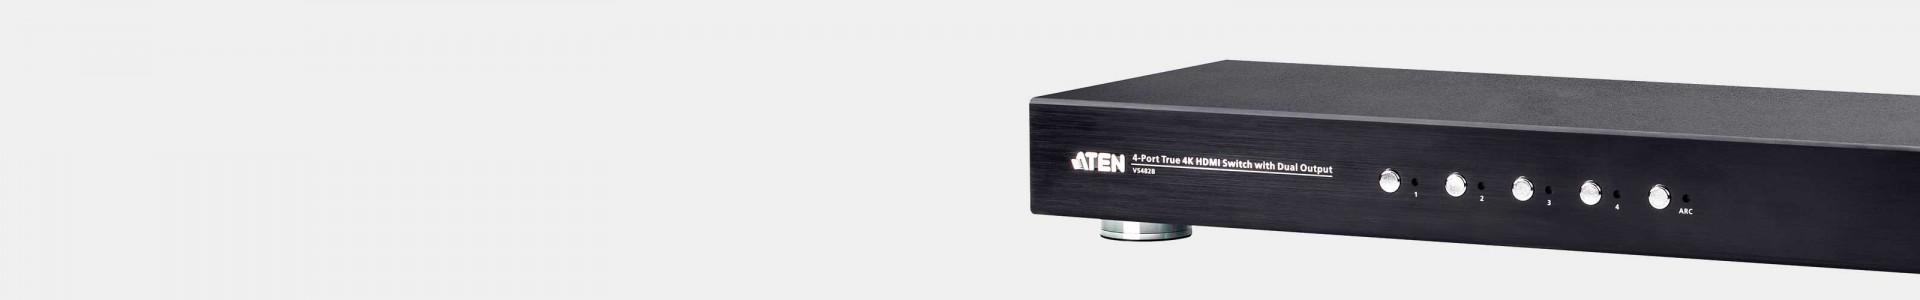 ATEN video selectors at Avacab - Discounts for installers